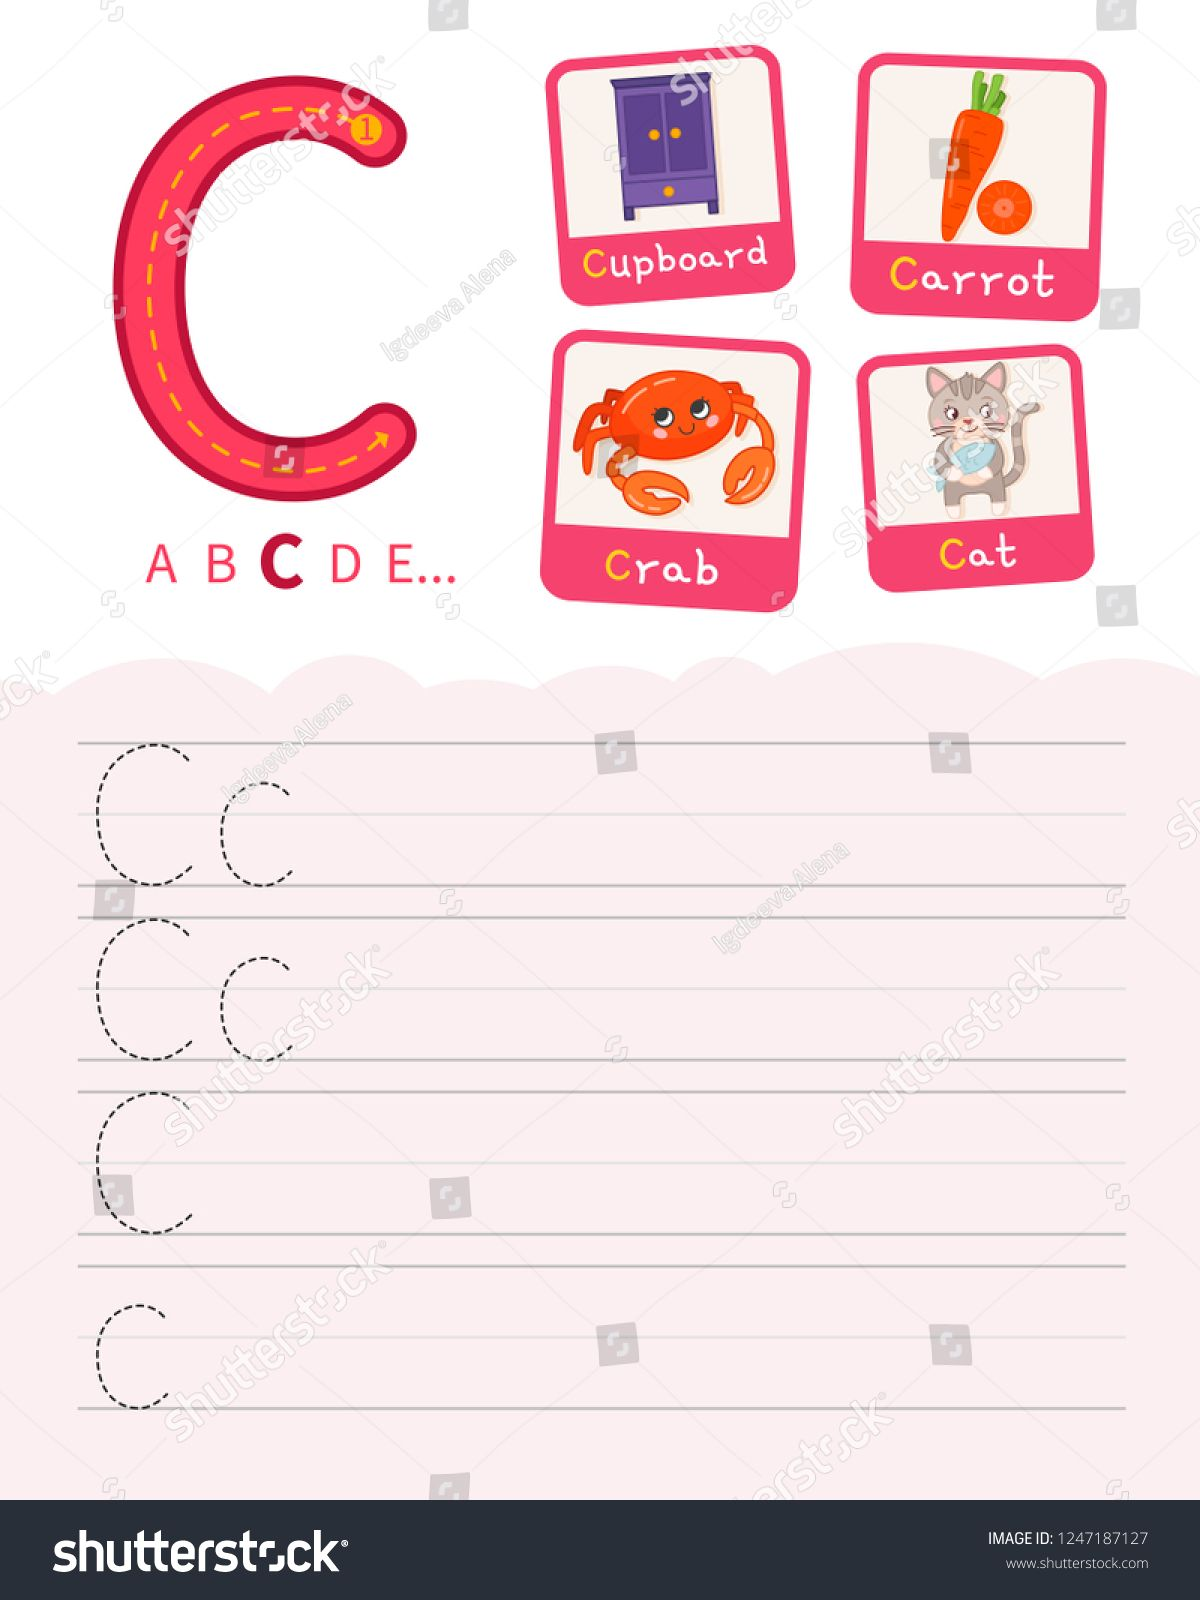 Handwriting practice sheet. Basic writing. Educational game for children. Learning the letters of the English alphabet. Cards with objects. Letter C ,